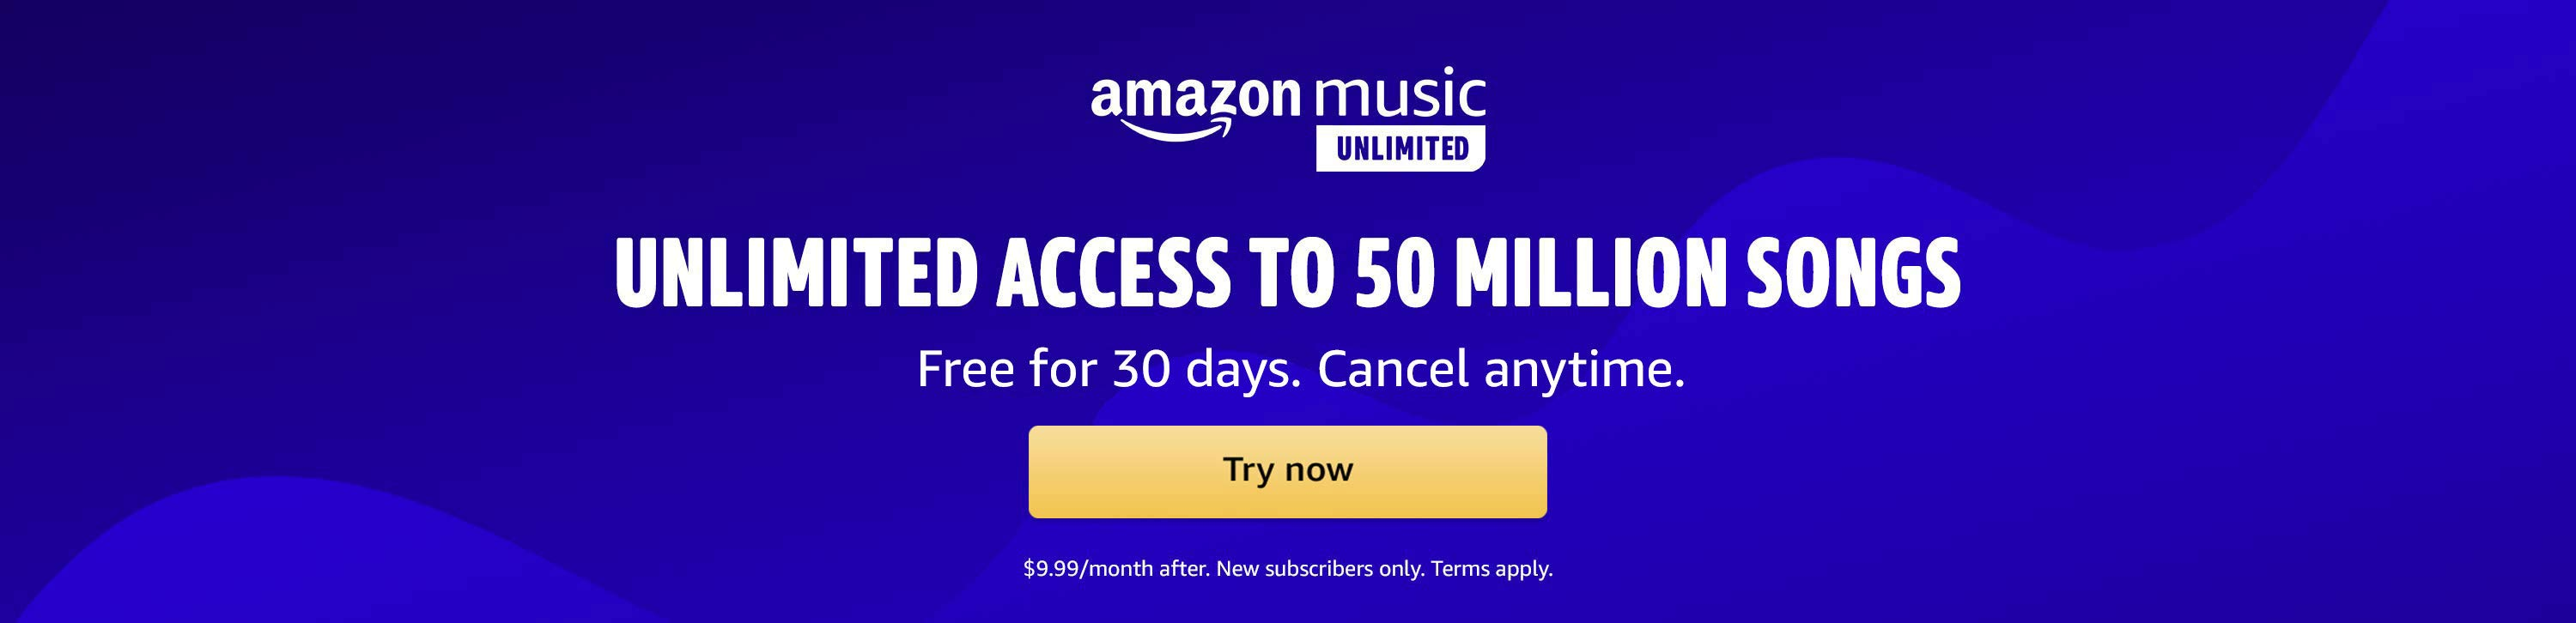 Amazon Music Unlimited, Access to 50 Million Songs, listen to any song, anywhere, Try now